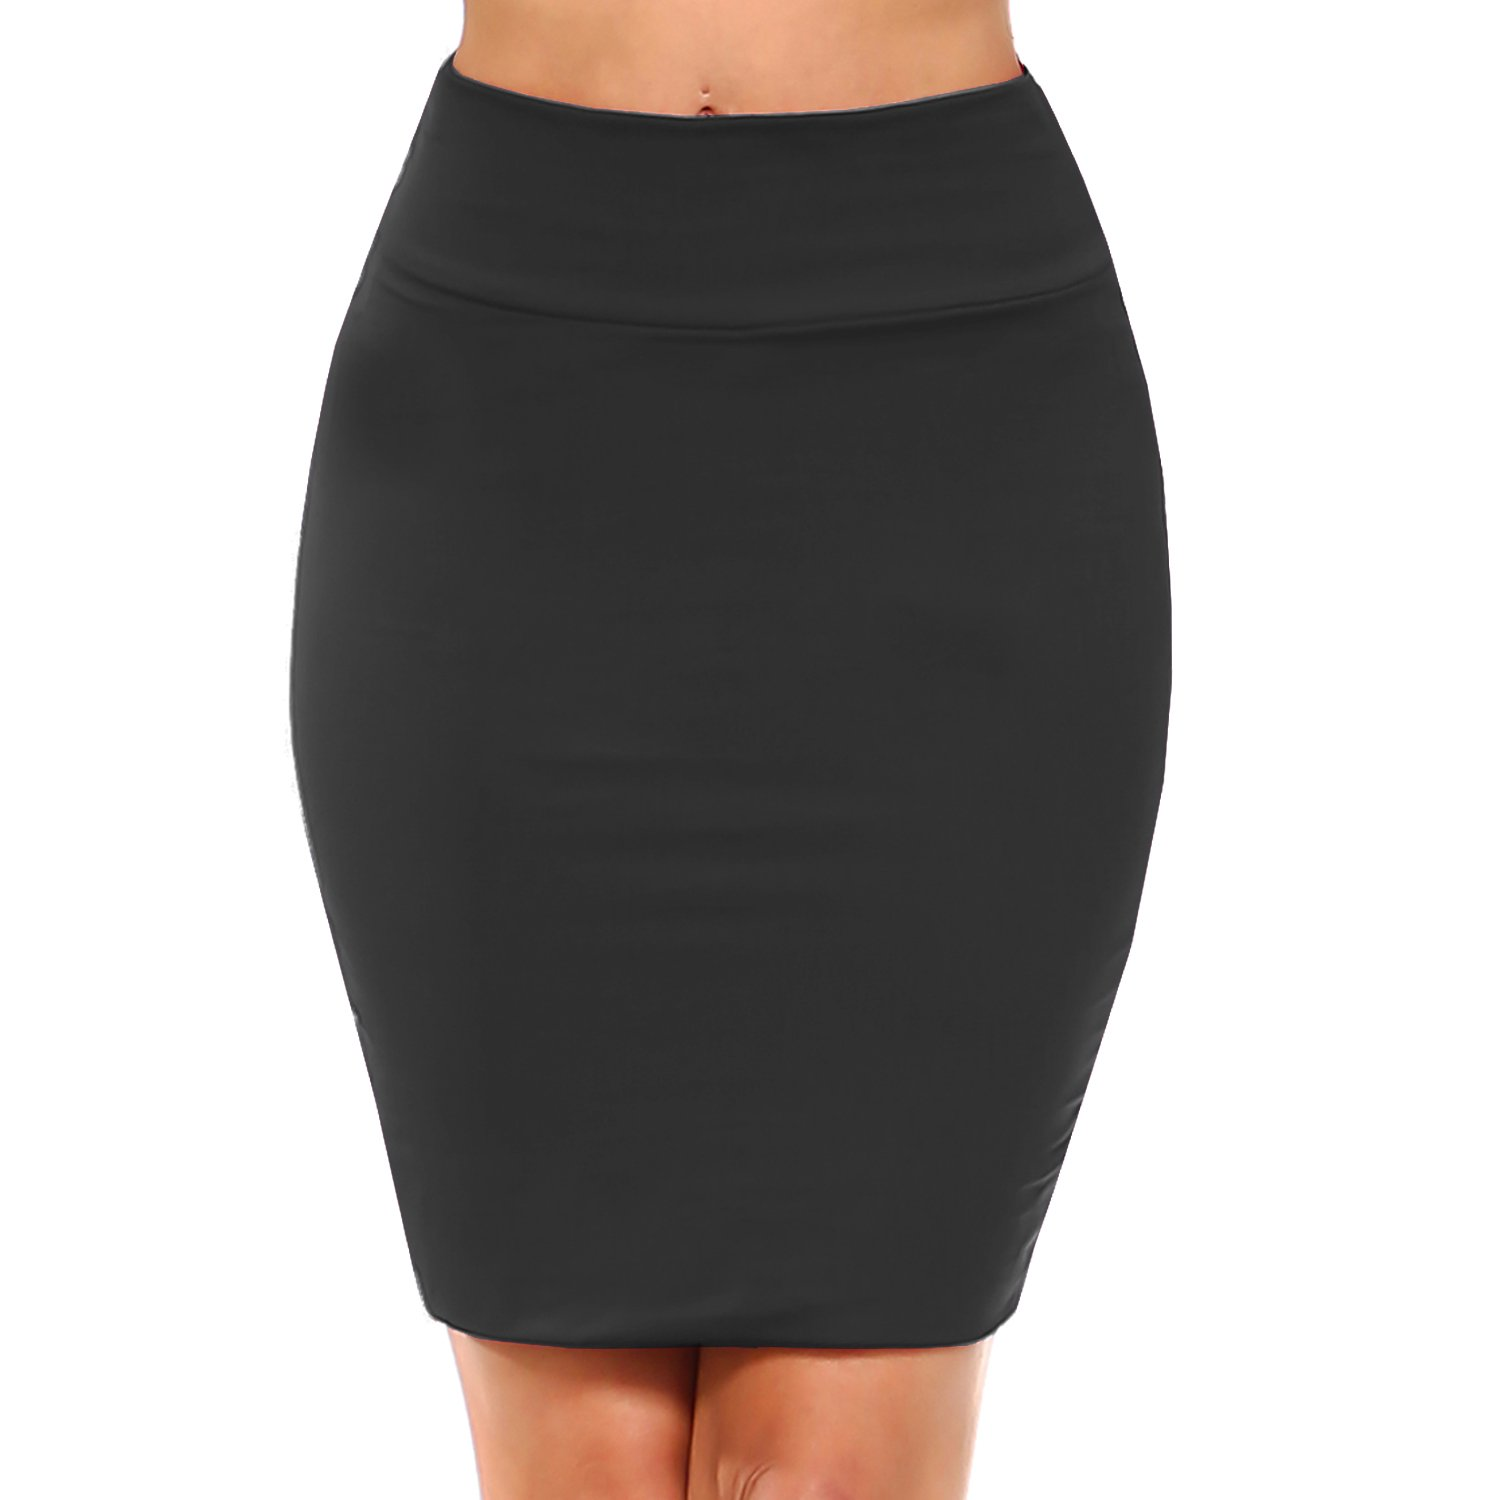 Fashionazzle Women's Casual Stretchy Bodycon Pencil Mid-Mini Skirt